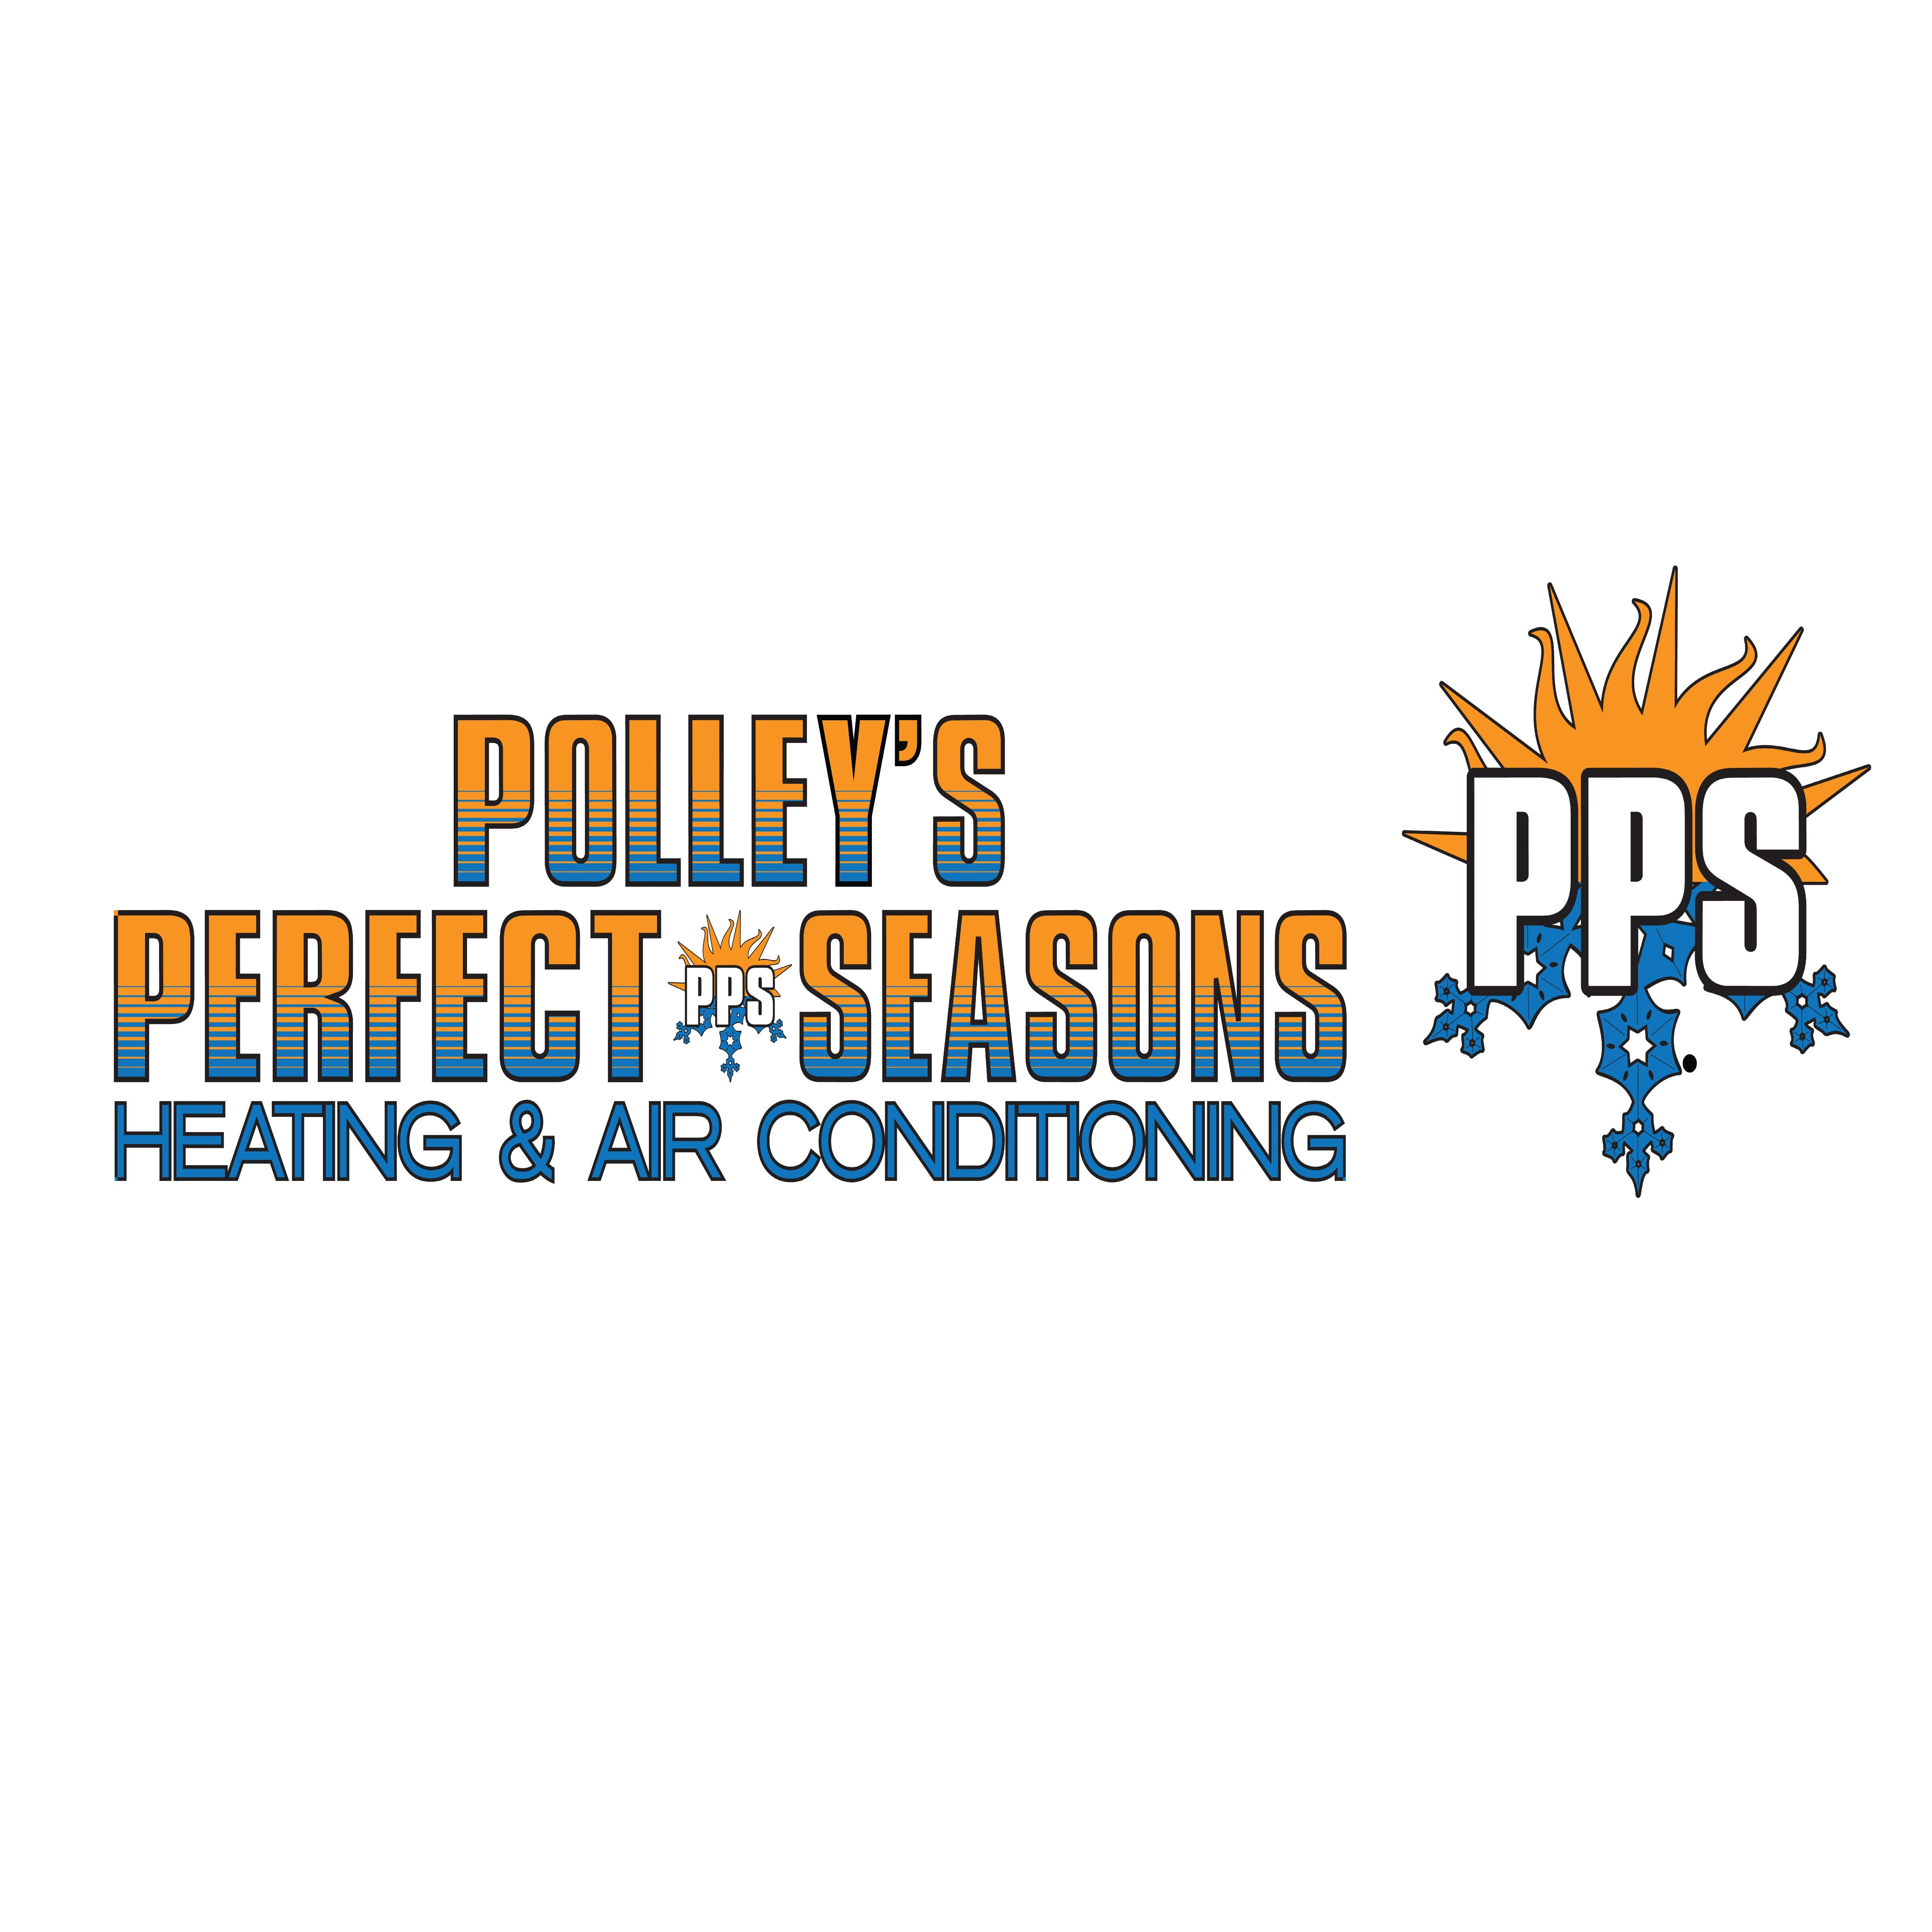 Polley's Perfect Seasons